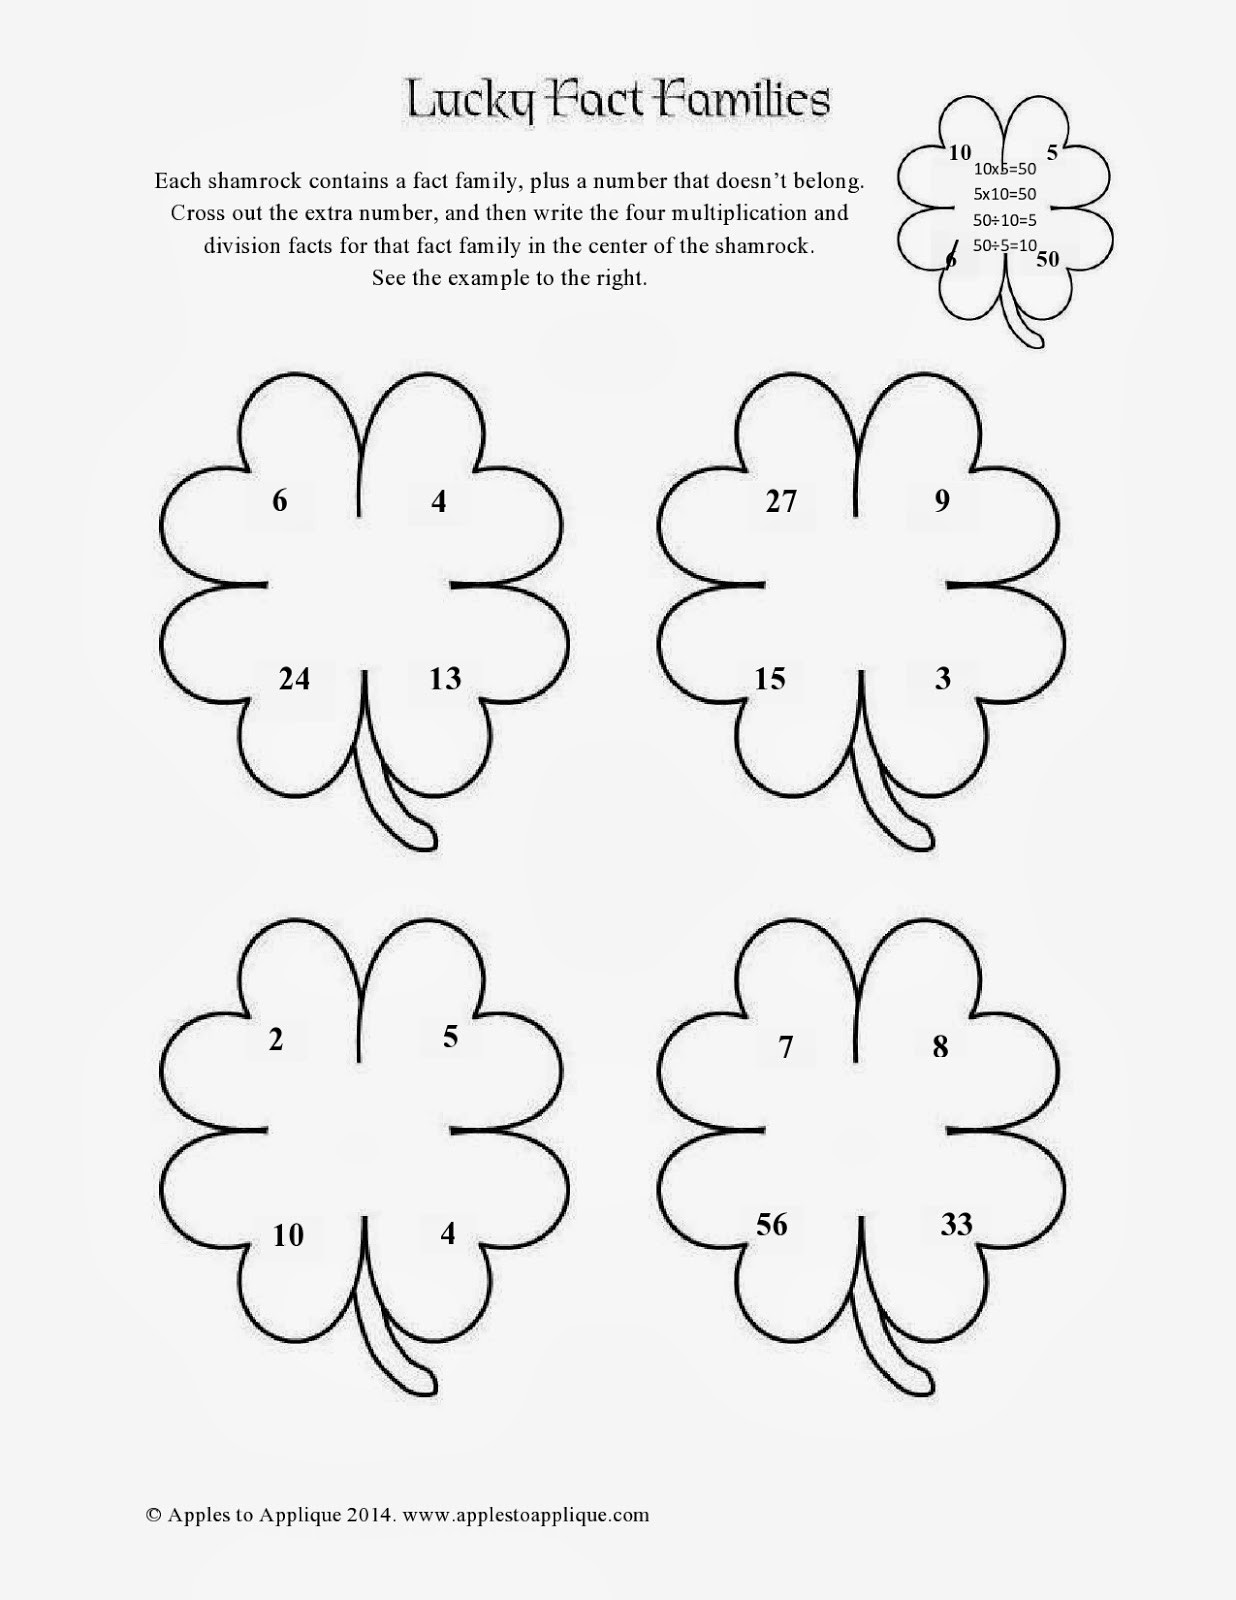 Free Printable Fact Family Worksheets